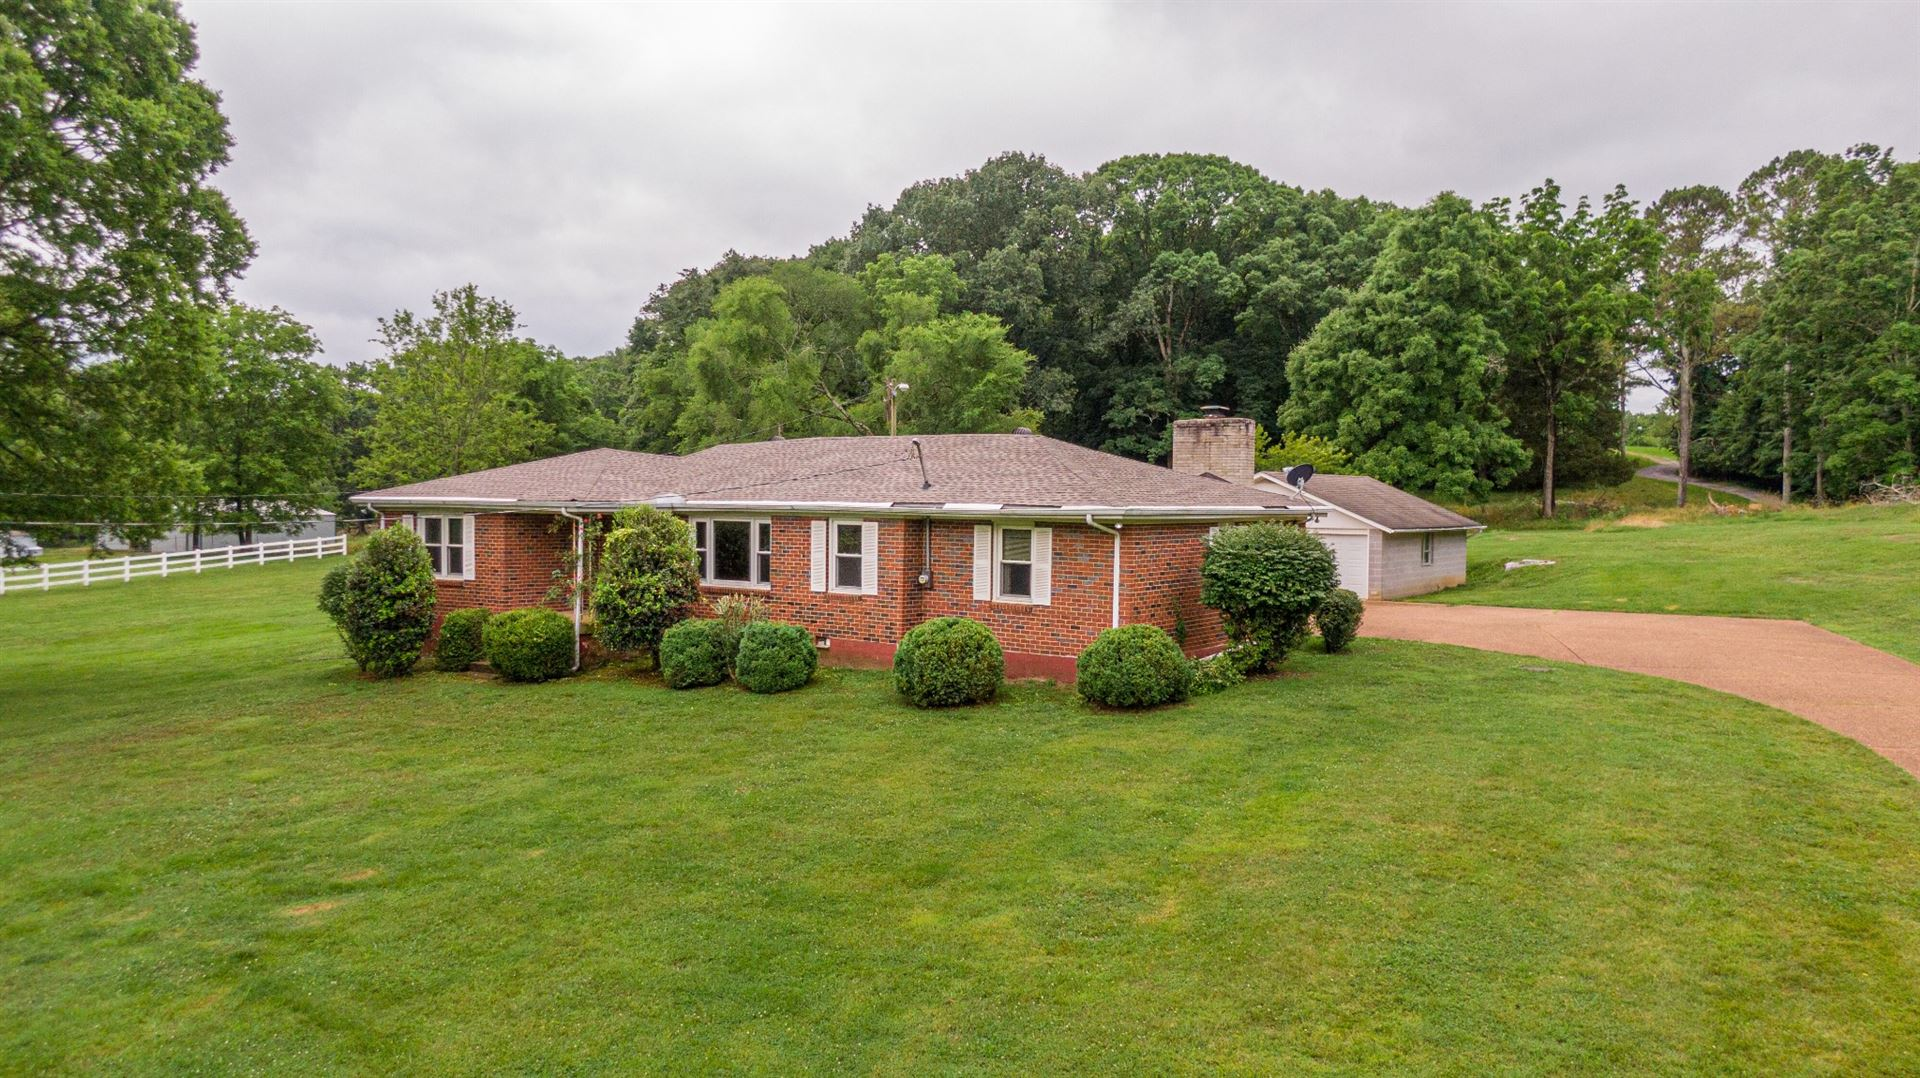 Photo of 1855 Bakers Grove Rd, Hermitage, TN 37076 (MLS # 2262125)